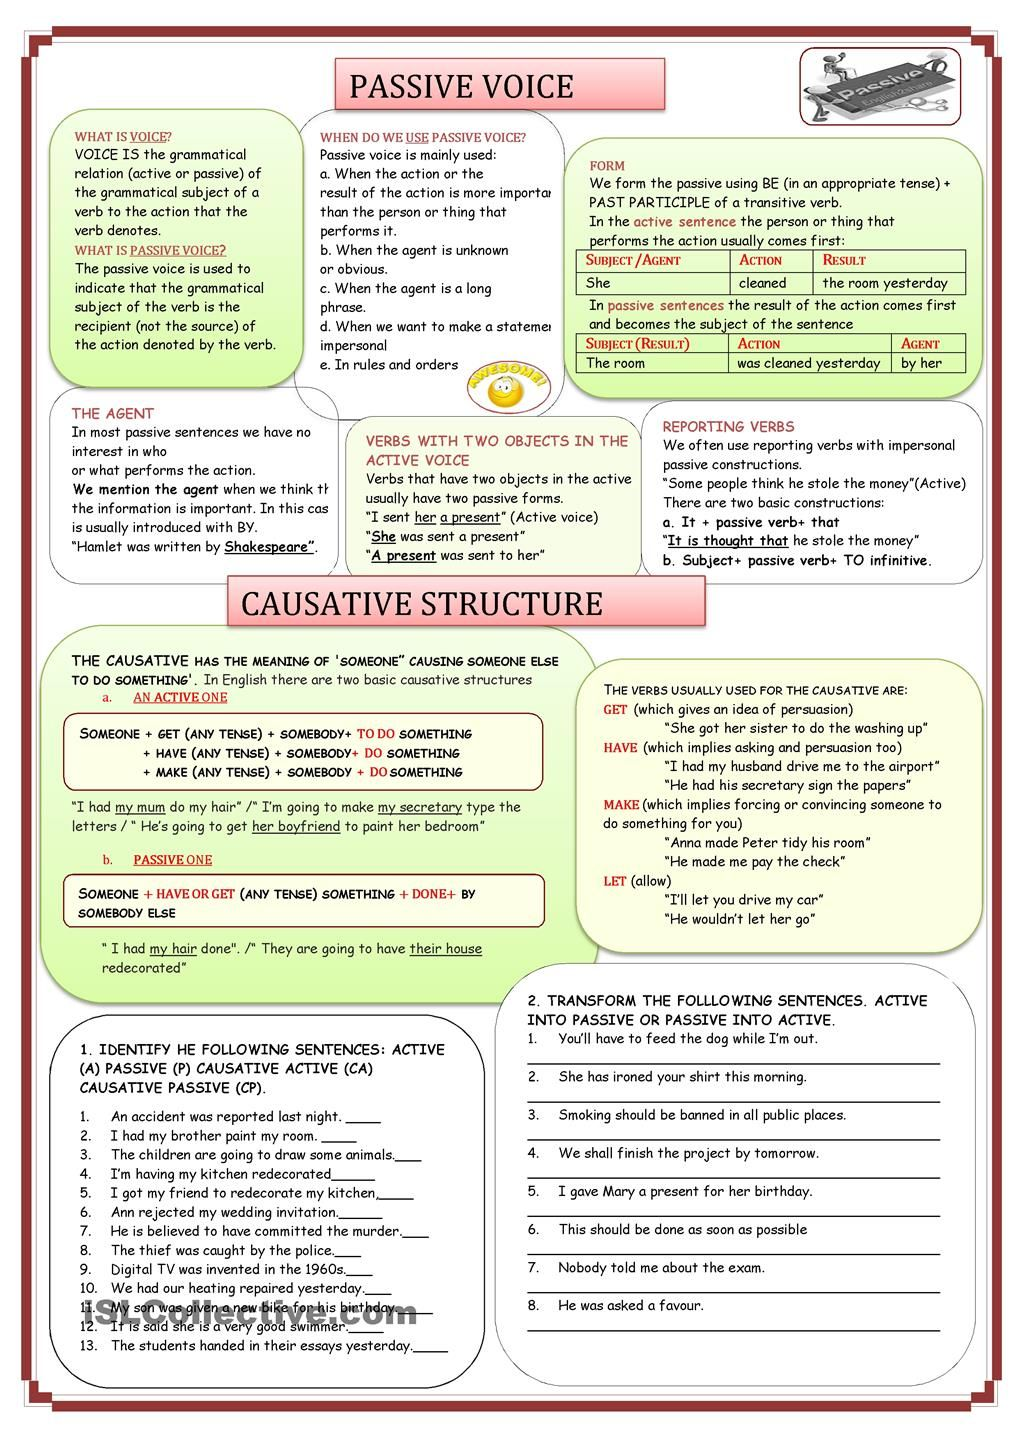 PASSIVE VOICE AND CAUSATIVE STRUCTURE | Applied Linguistics ...